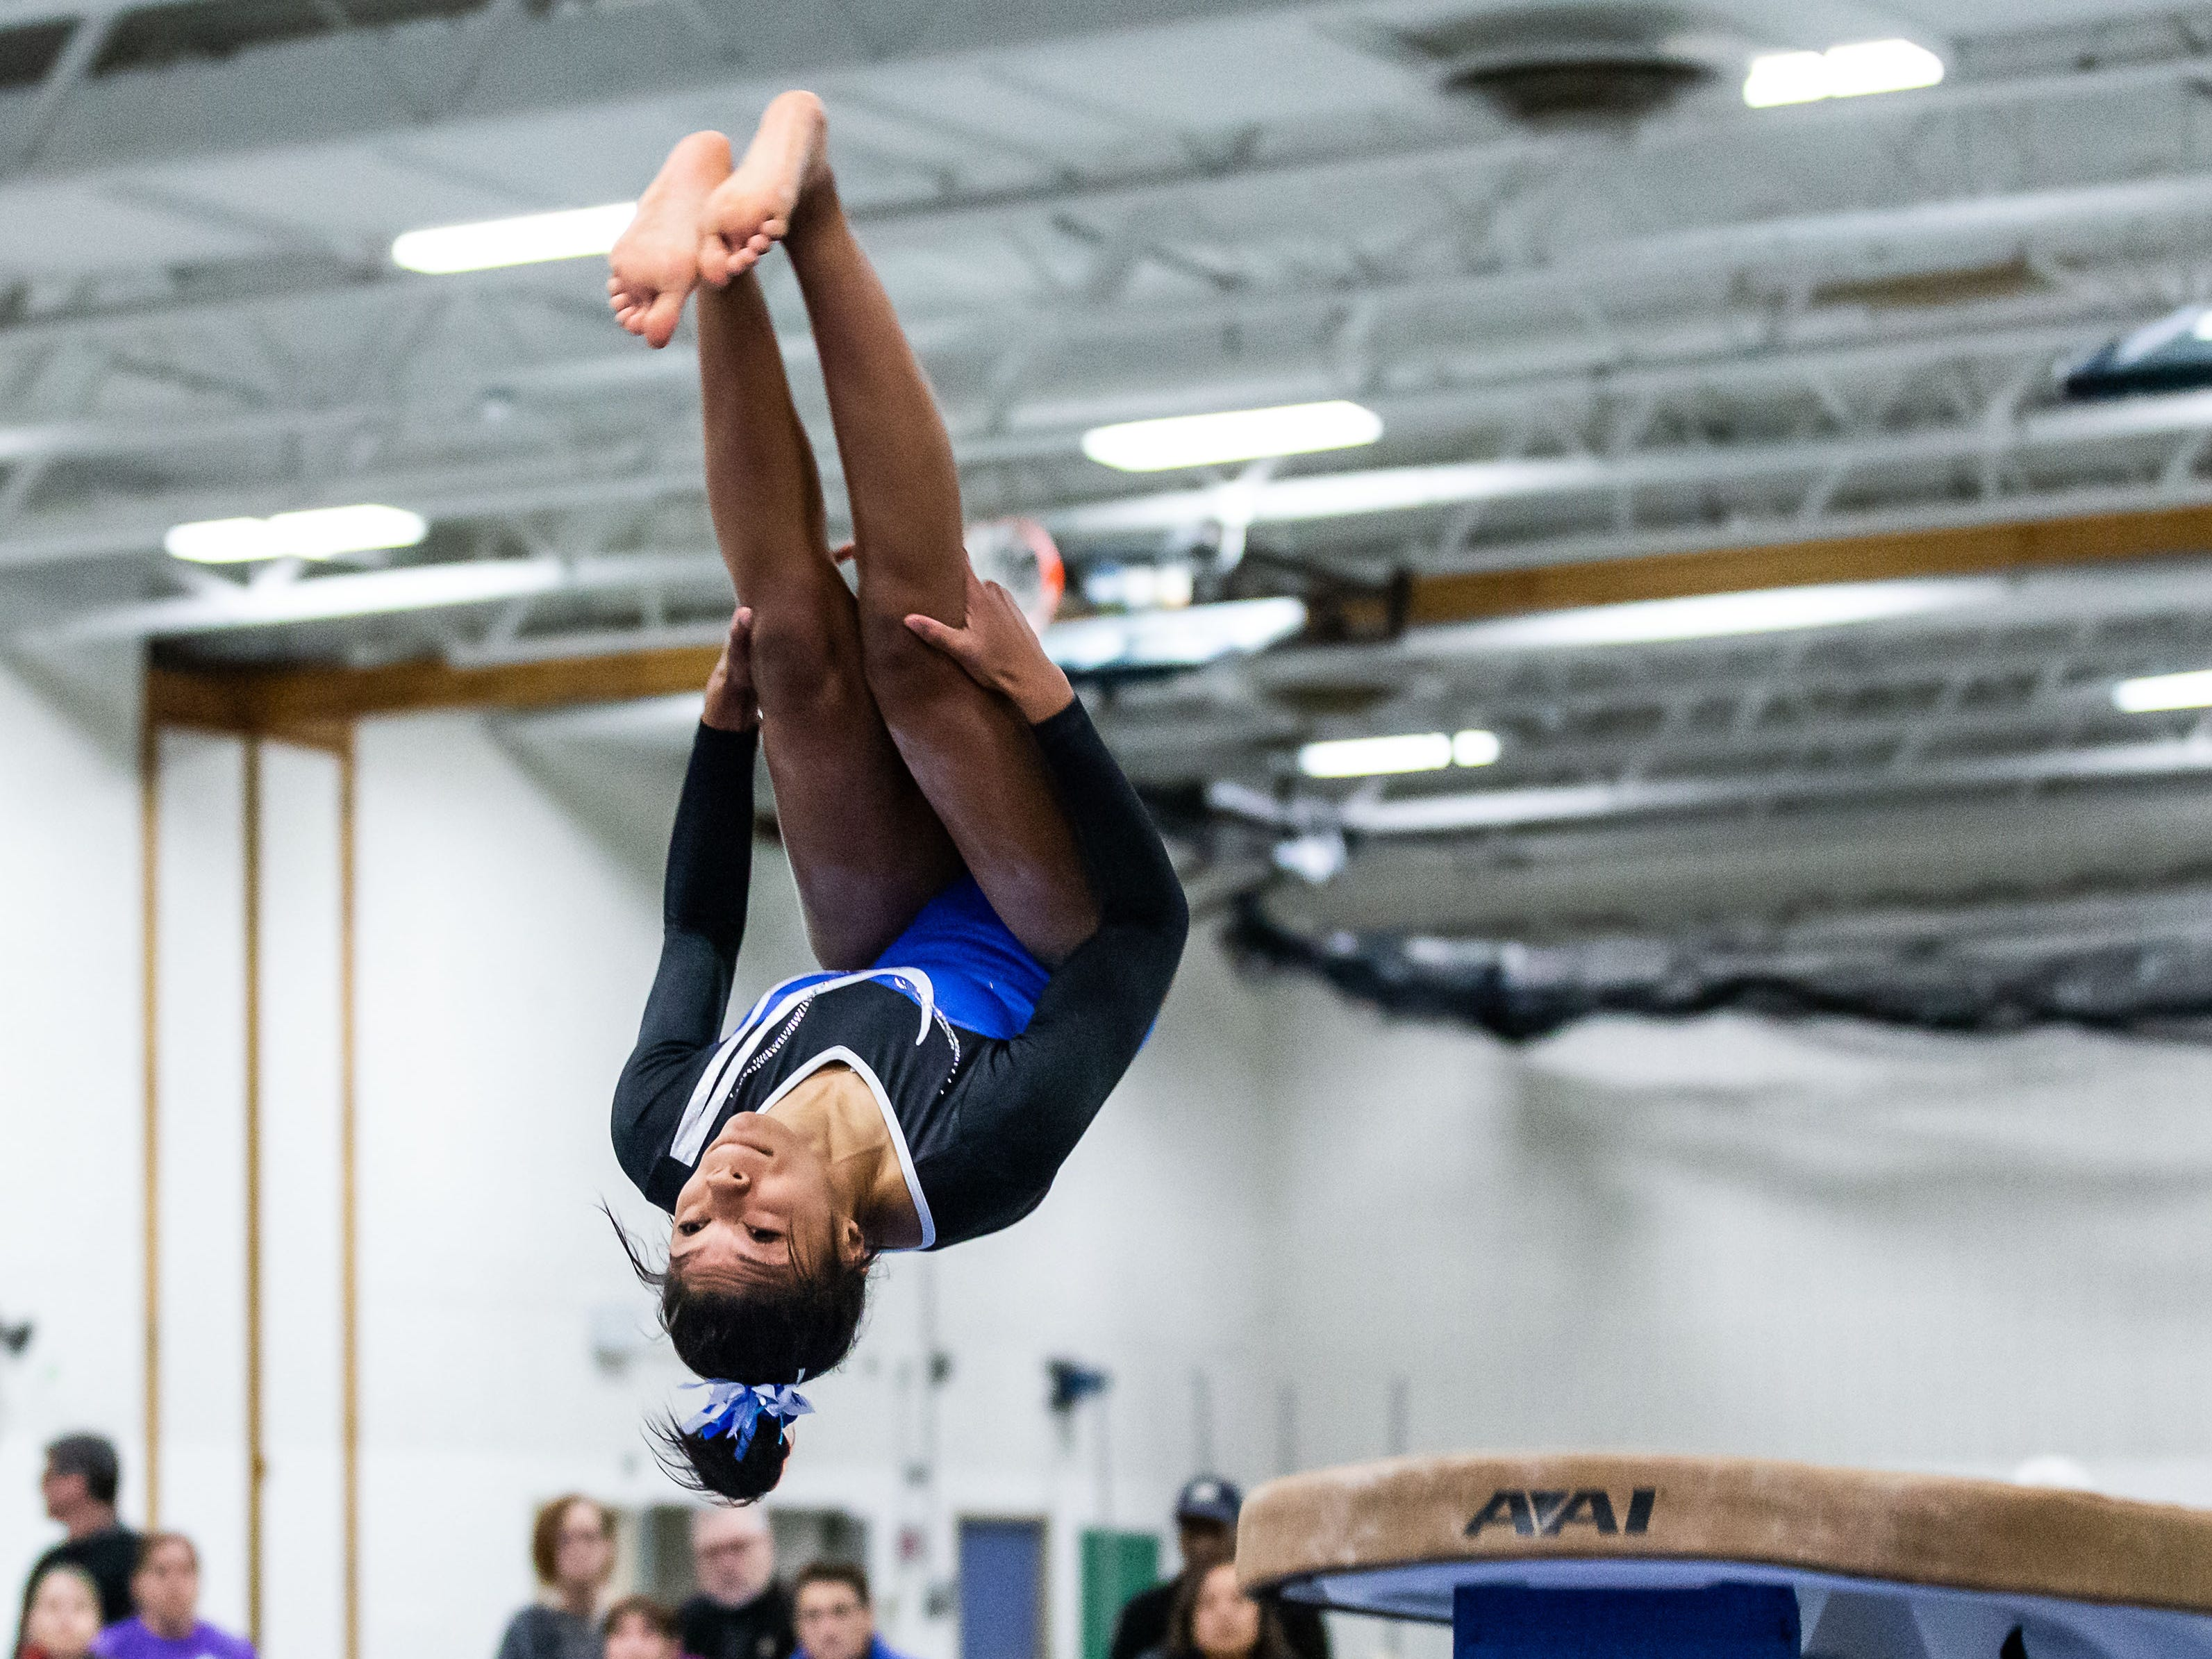 Nicolet gymnast Kynnedi Malone performs a backflip off the vault during the meet at home against Whitefish Bay on Thursday, Jan. 3, 2019. Kynnedi Malone placed second in the event with a score of 9.125.